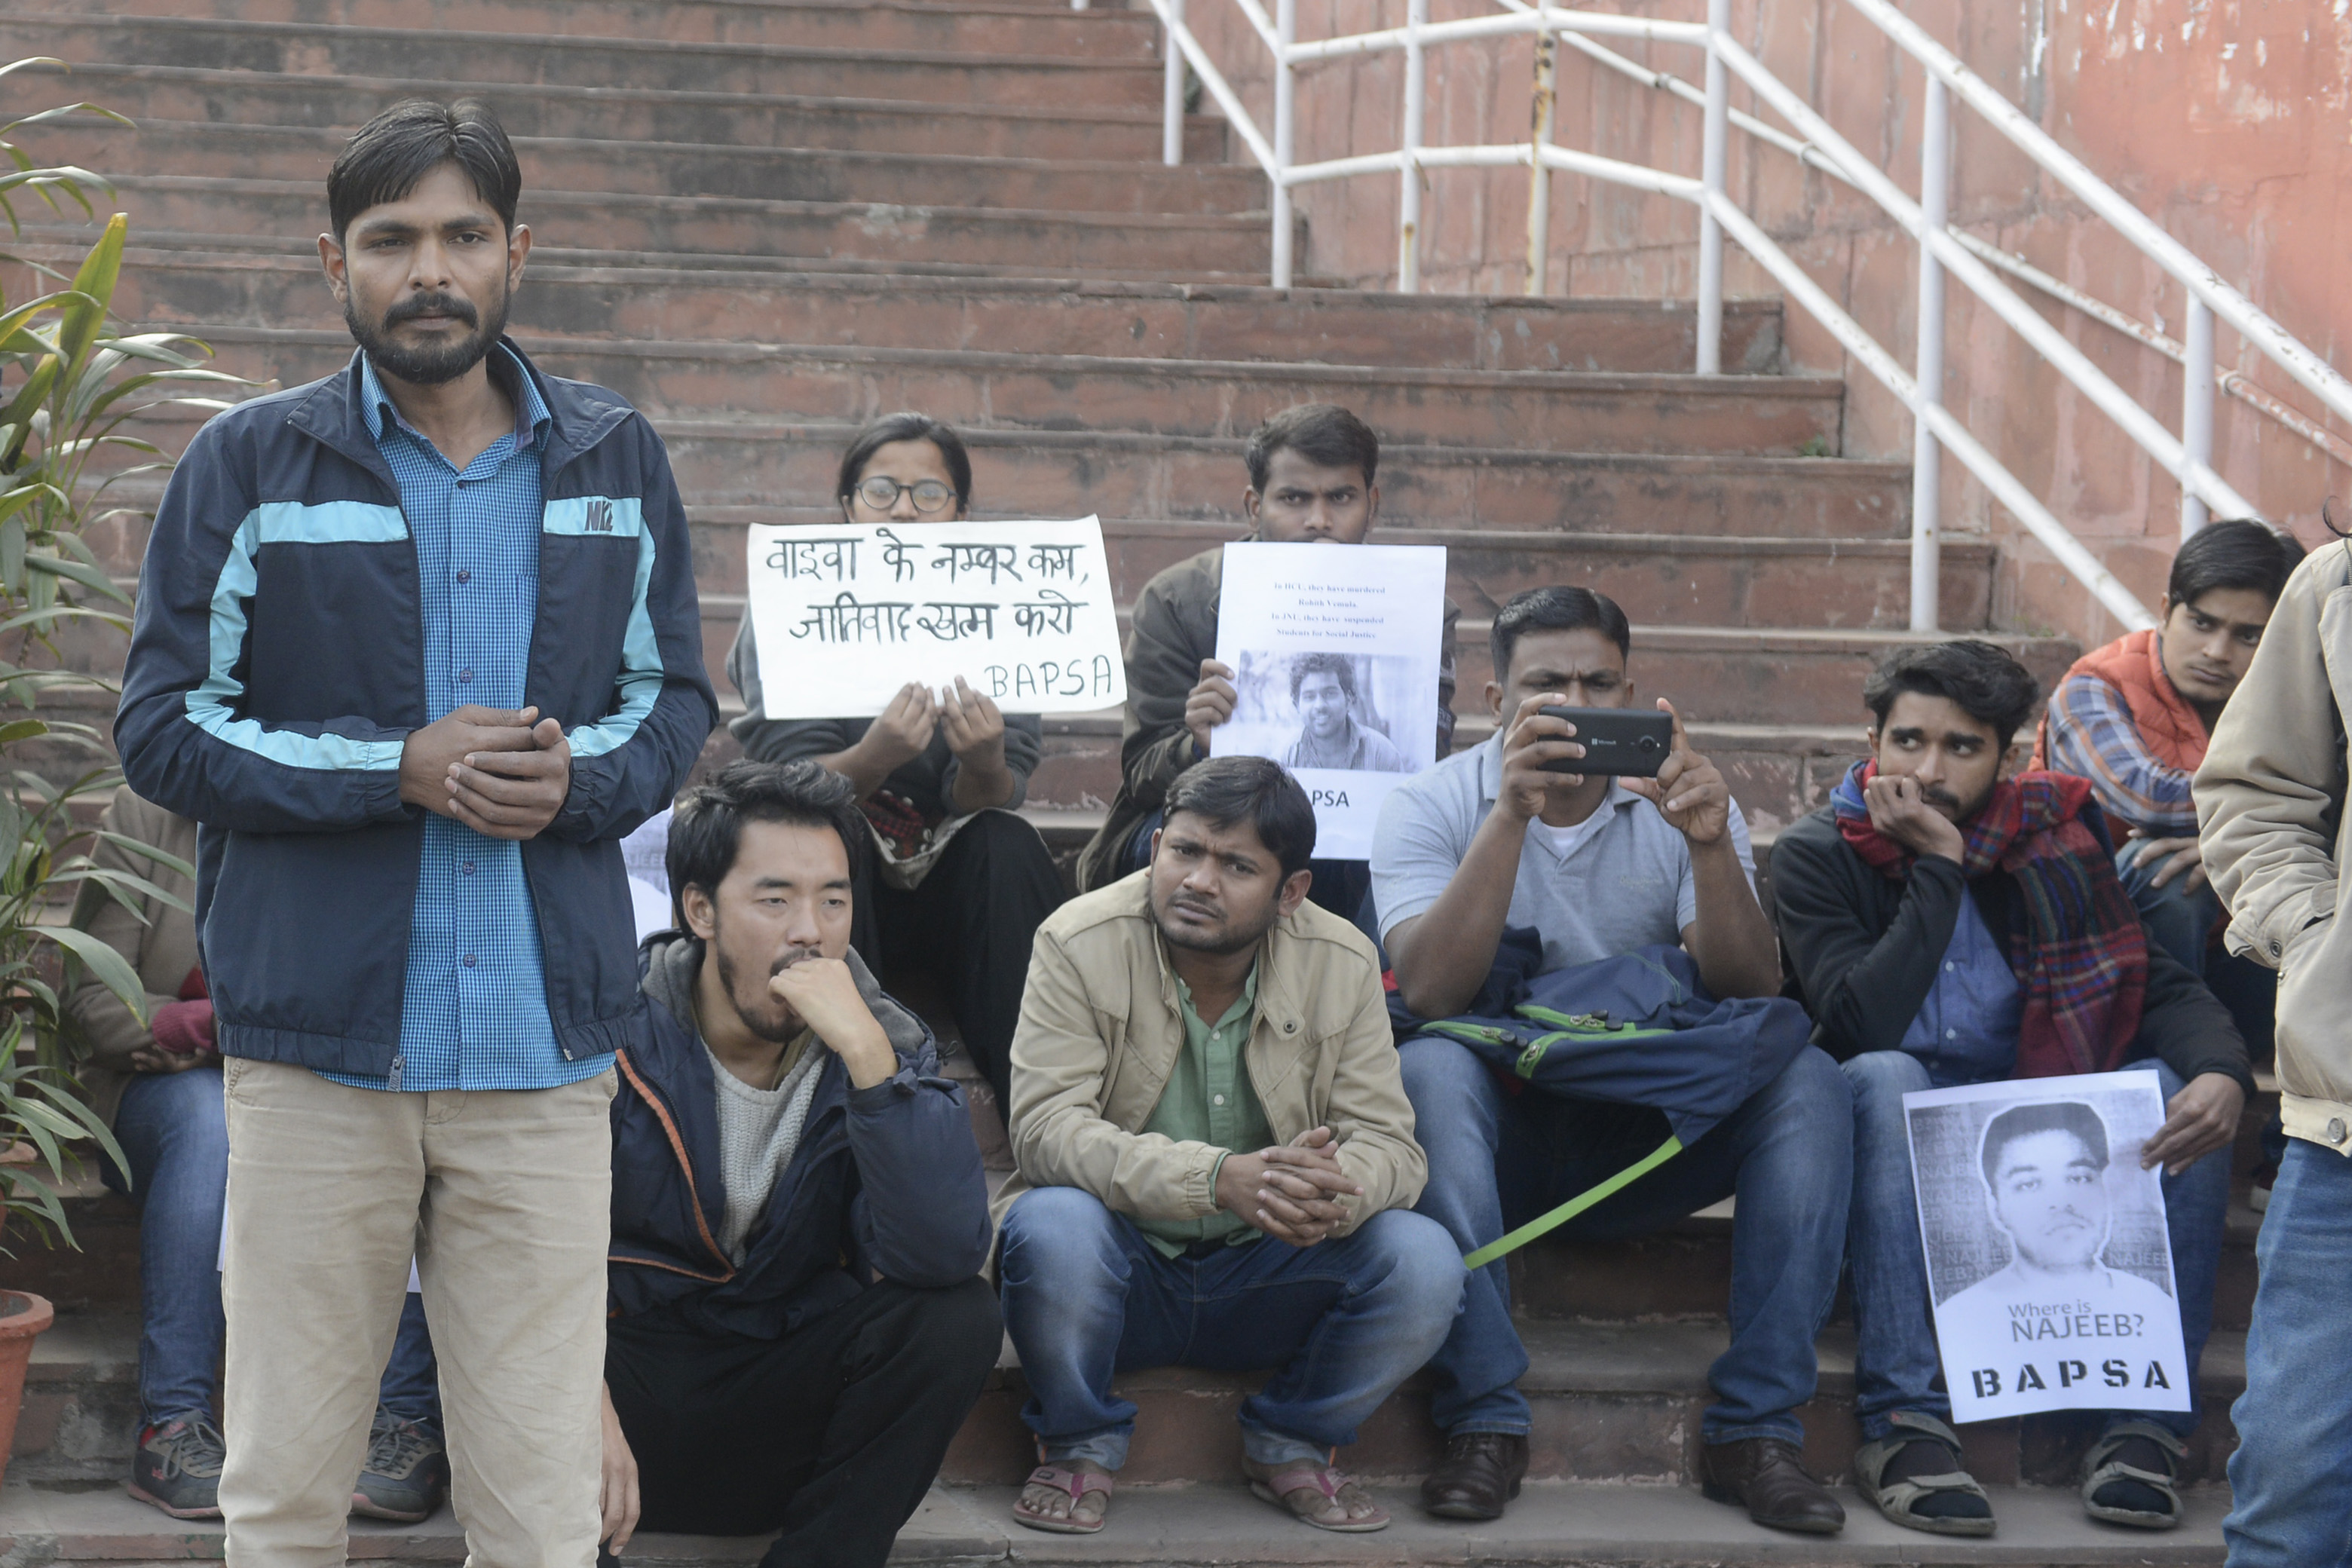 File photo of students at Jawaharlal Nehru University protesting the suspension of eight students in December 2016